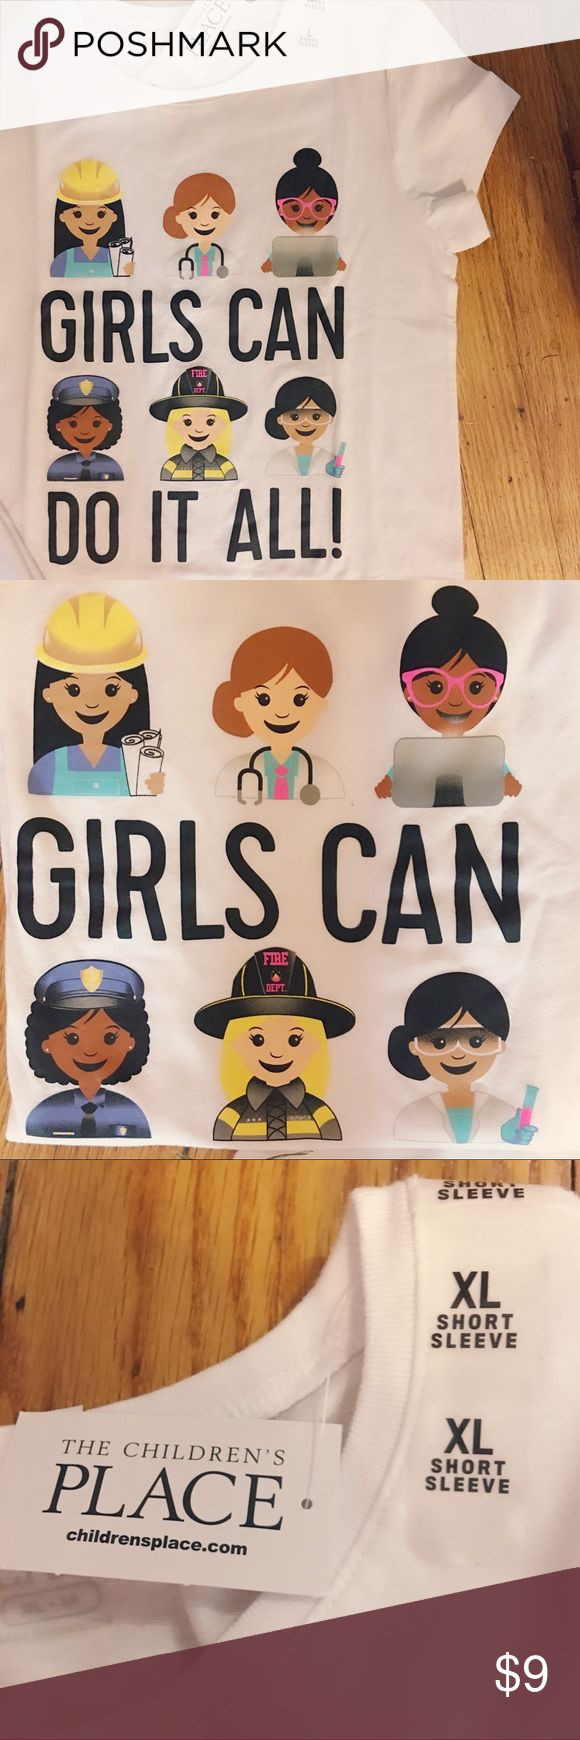 """BNWT """"Girls Can Do It All"""" Tee (Multiple) 2 """"GirlsCan Do It All"""" tees. Inspire confidence in your little lady with this super fun tee shirt modeled after emojis. One L and one XL- Crewneck and short sleeves. Hemline hits around hips. Background is white with images of young girls working as a construction worker, doctor, computer programmer, police woman, firefighter,  & scientist. Original Retail $10.50. BNWT! Asking $9. *Bundle & save- look for more new kids items coming soon.* The…"""